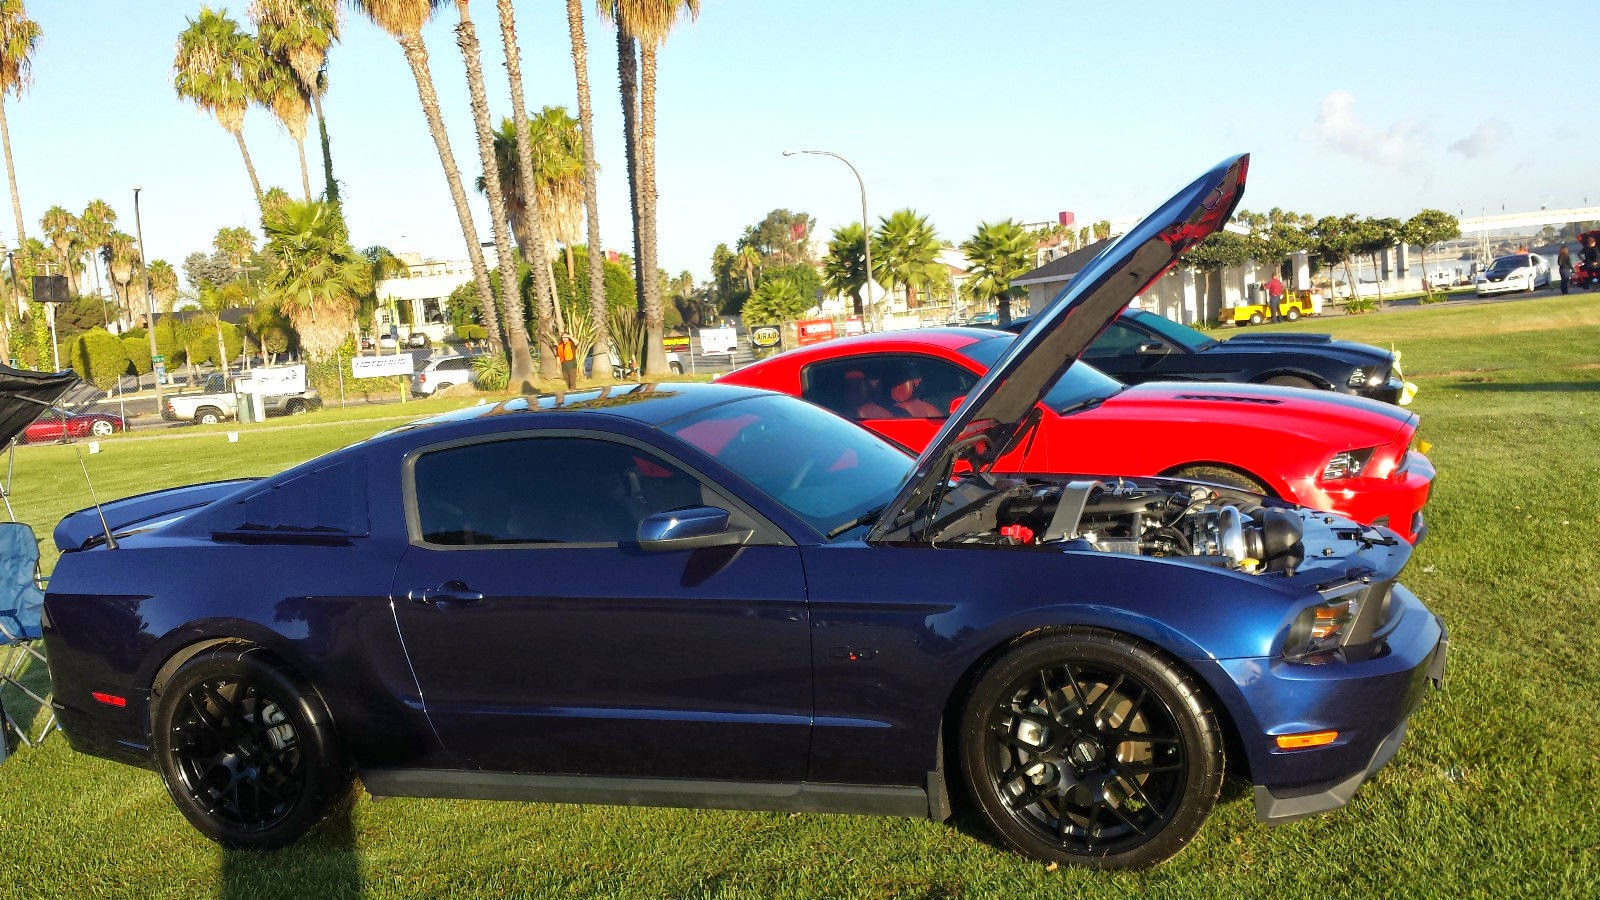 2011 ford mustang gt coupe 2 door for sale american muscle cars. Black Bedroom Furniture Sets. Home Design Ideas